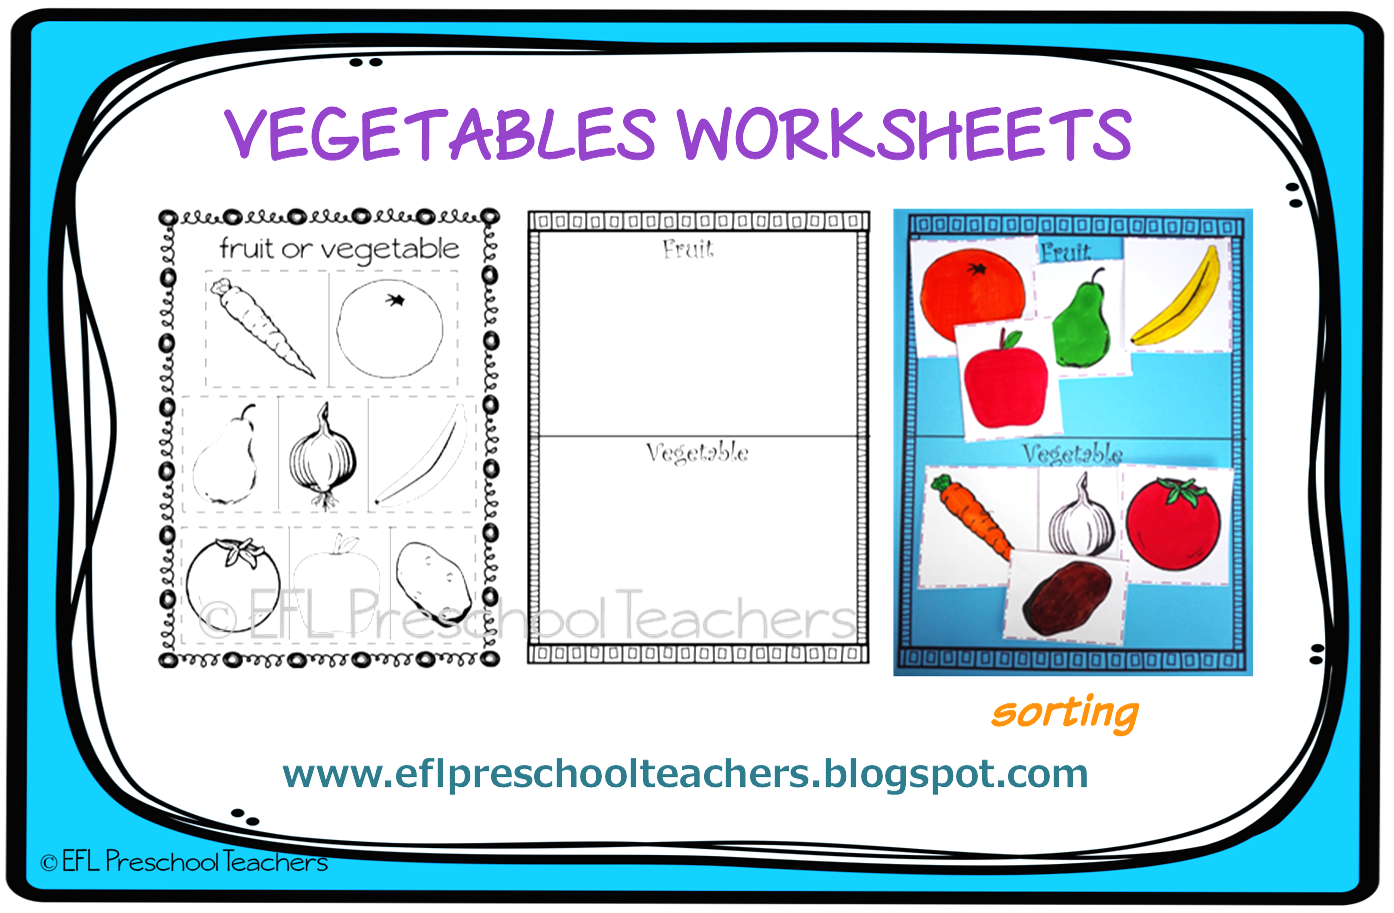 Esl Efl Preschool Teachers Vegetables Activities